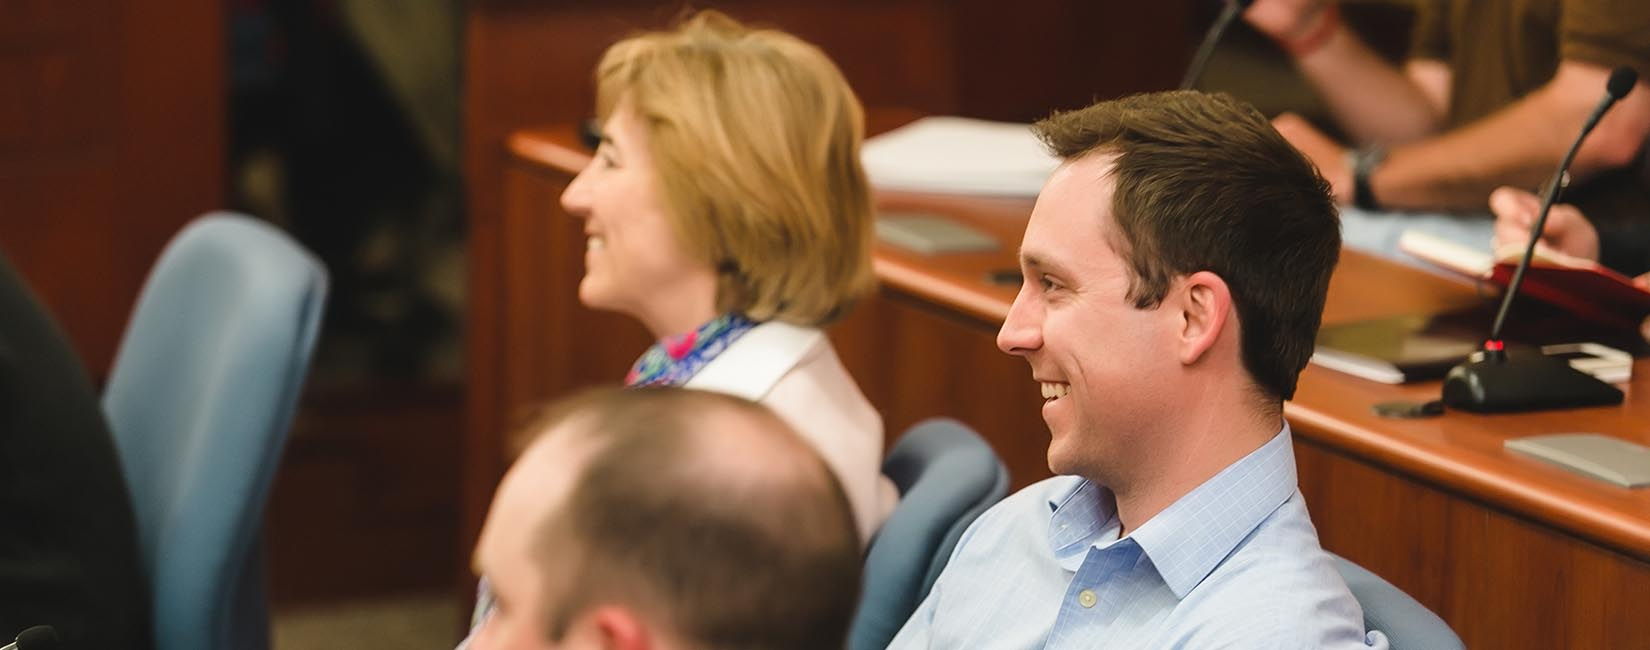 Part-time MBA students listen to Dr. Dan Horne's lecture.